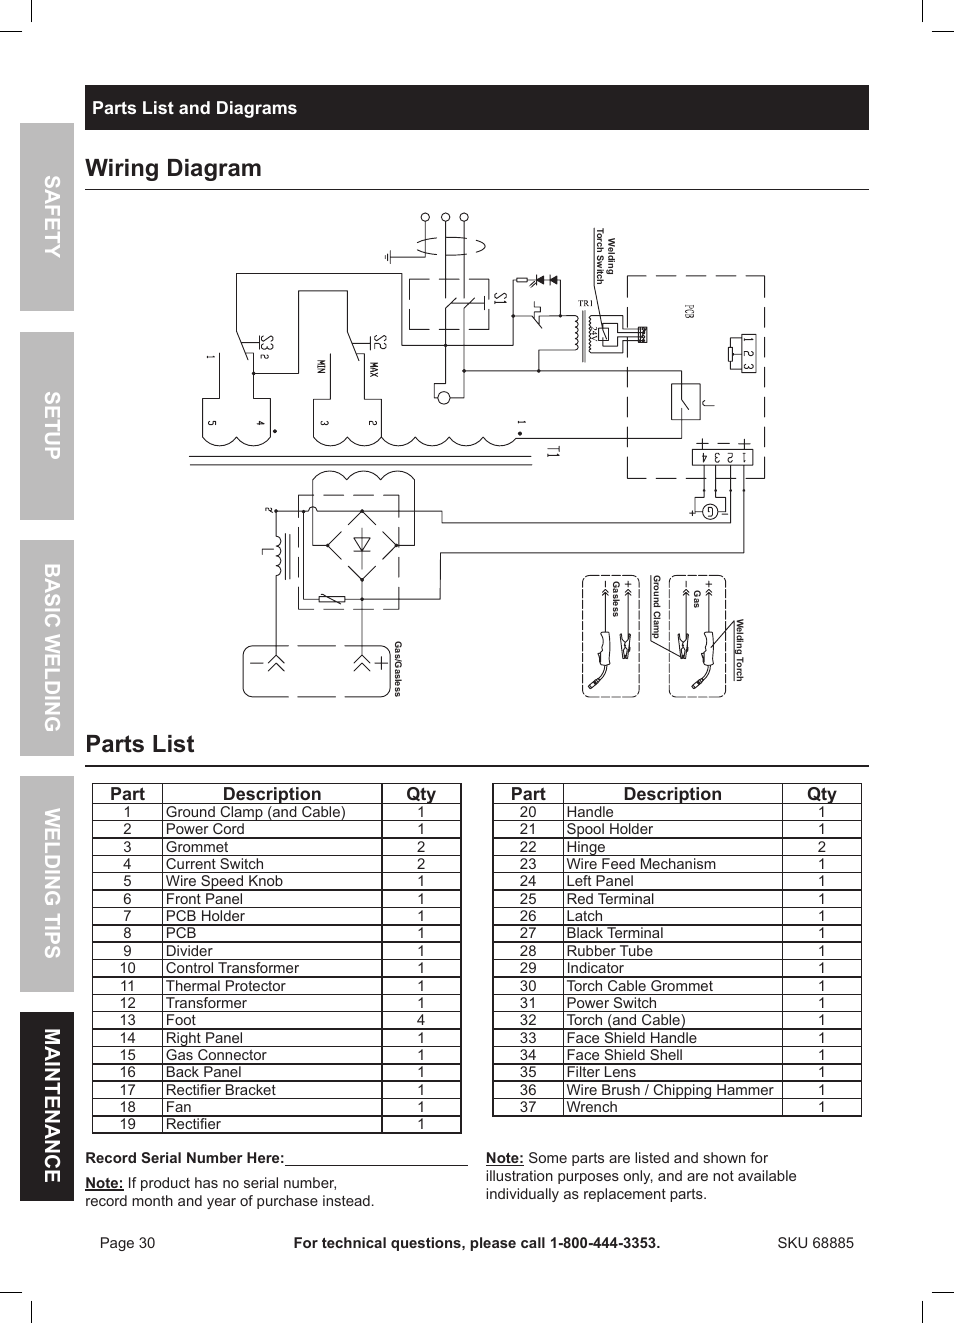 wiring diagram  parts list